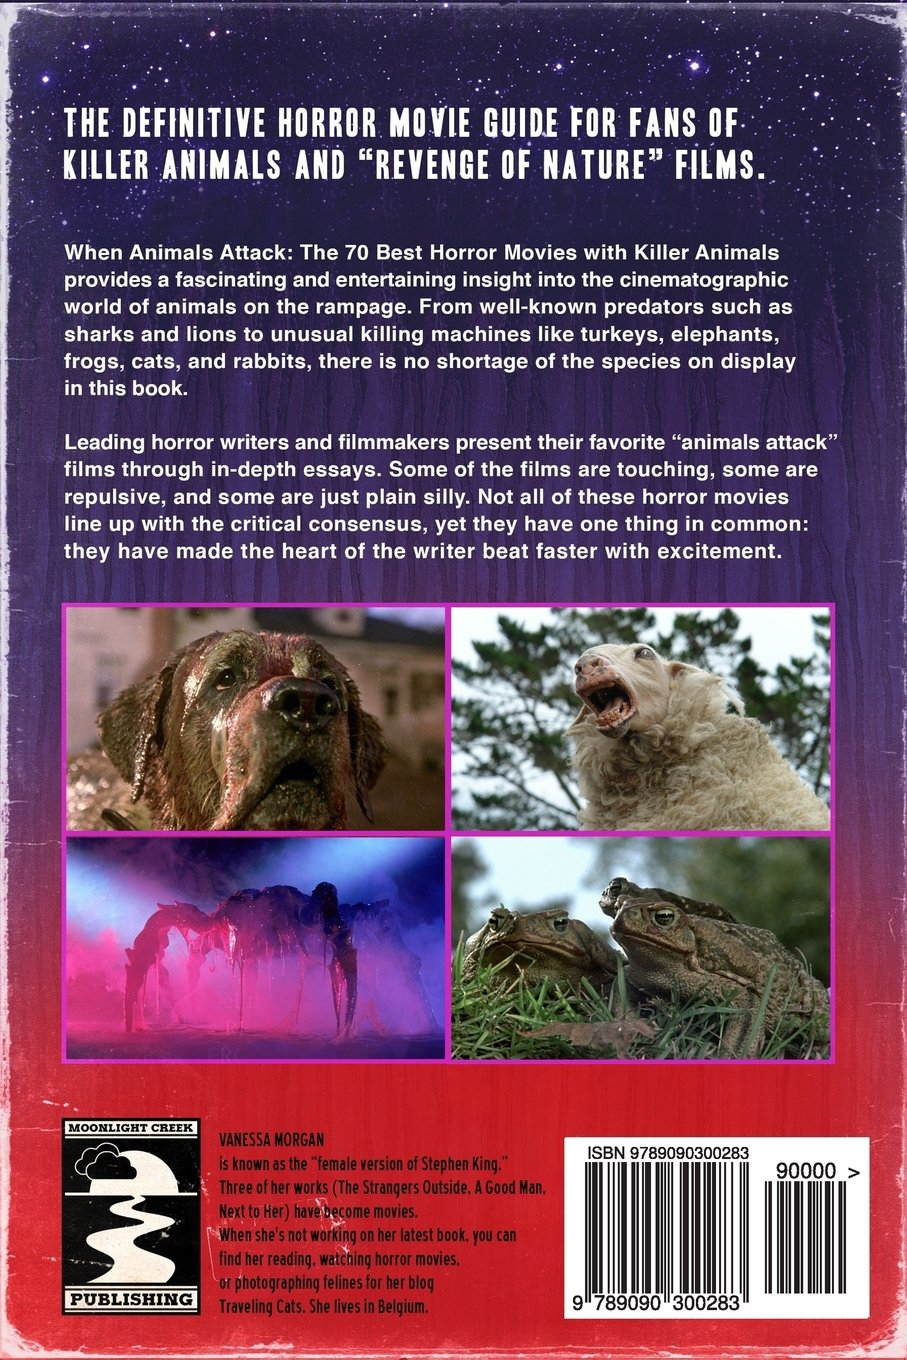 when animals attack the 70 best horror movies killer animals when animals attack the 70 best horror movies killer animals vanessa morgan 9789090300283 com books